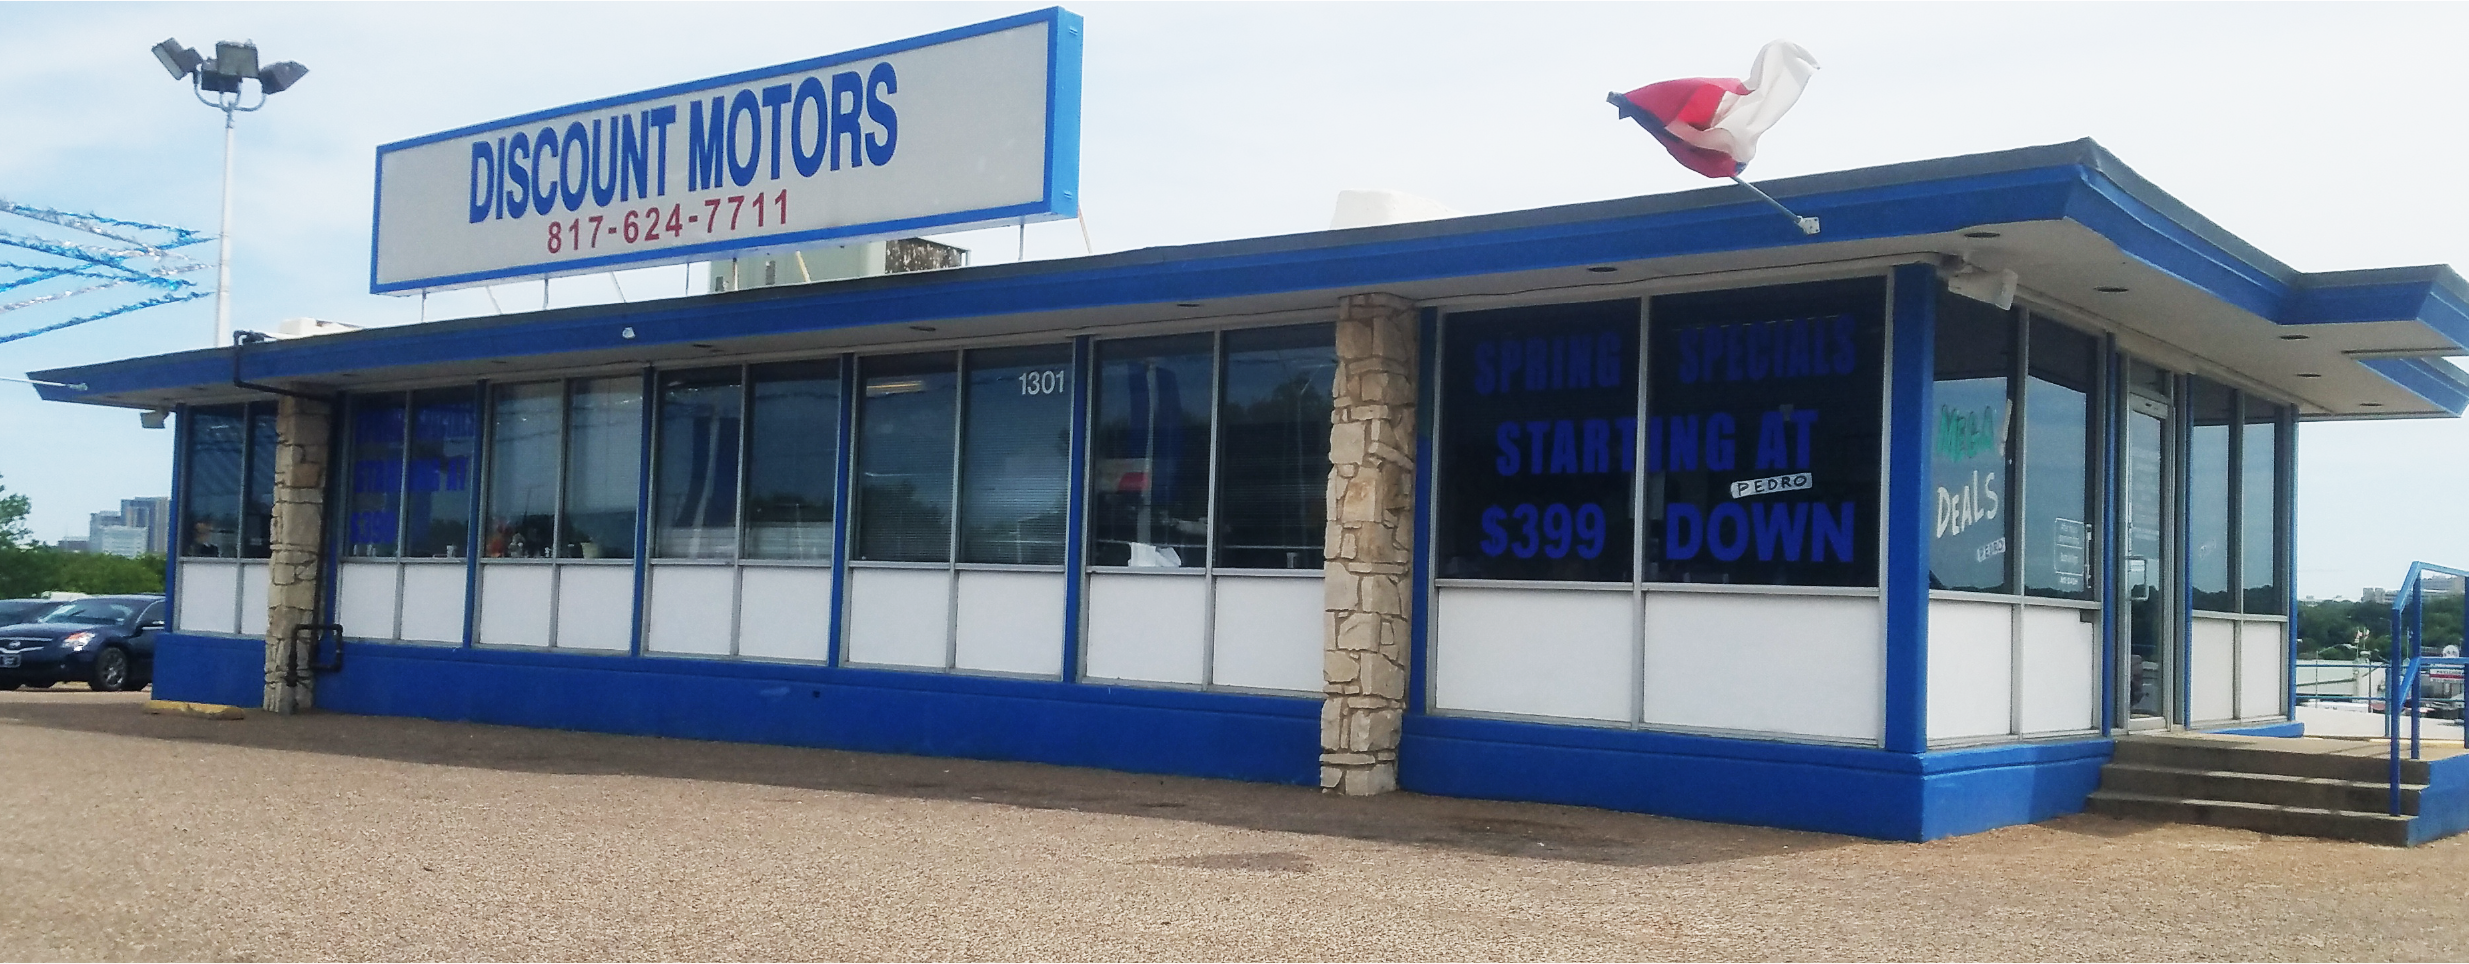 discount motors 5 1301 jacksboro hwy fort worth tx 76114